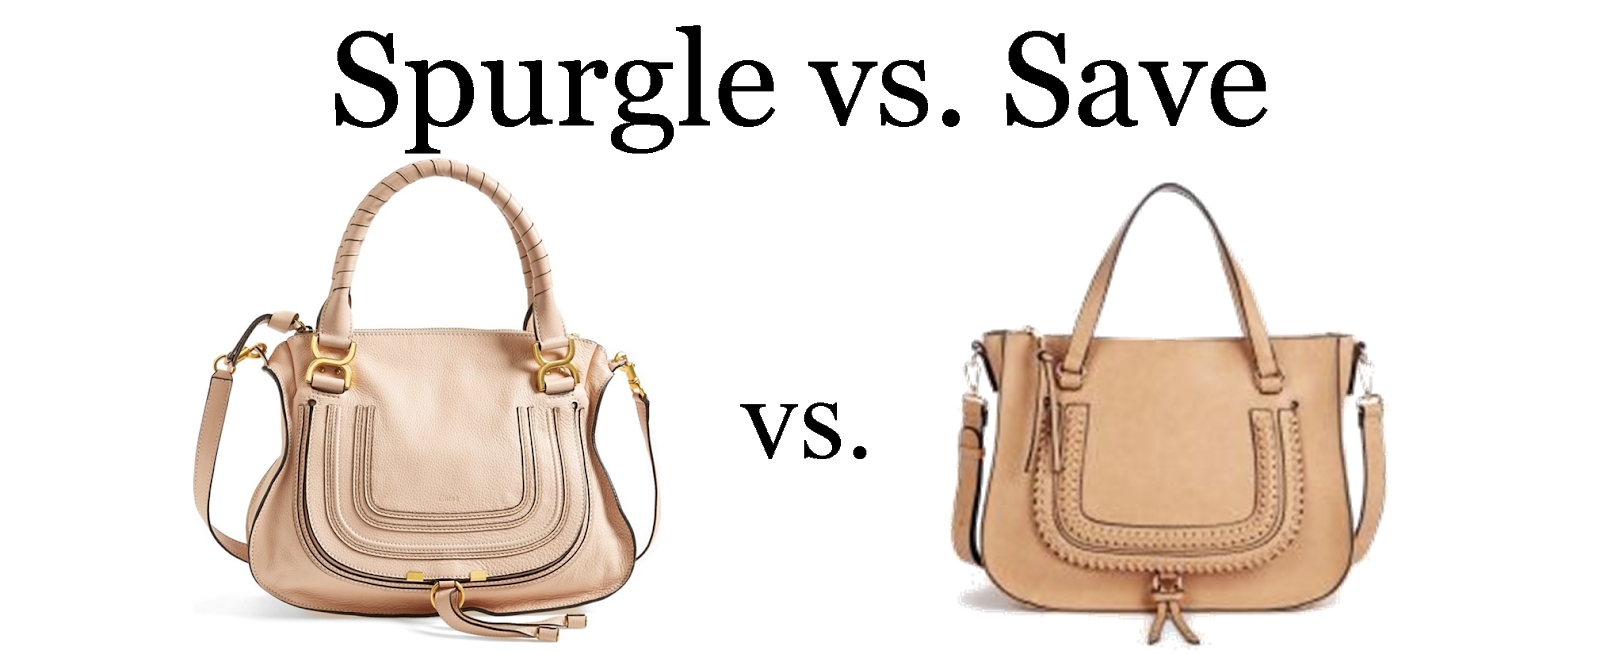 64ab938b6bc Save: Chloe Marcie Satchel. Y'all know I am all about a good dupe, why pay  more when you can get the same look for so much less??